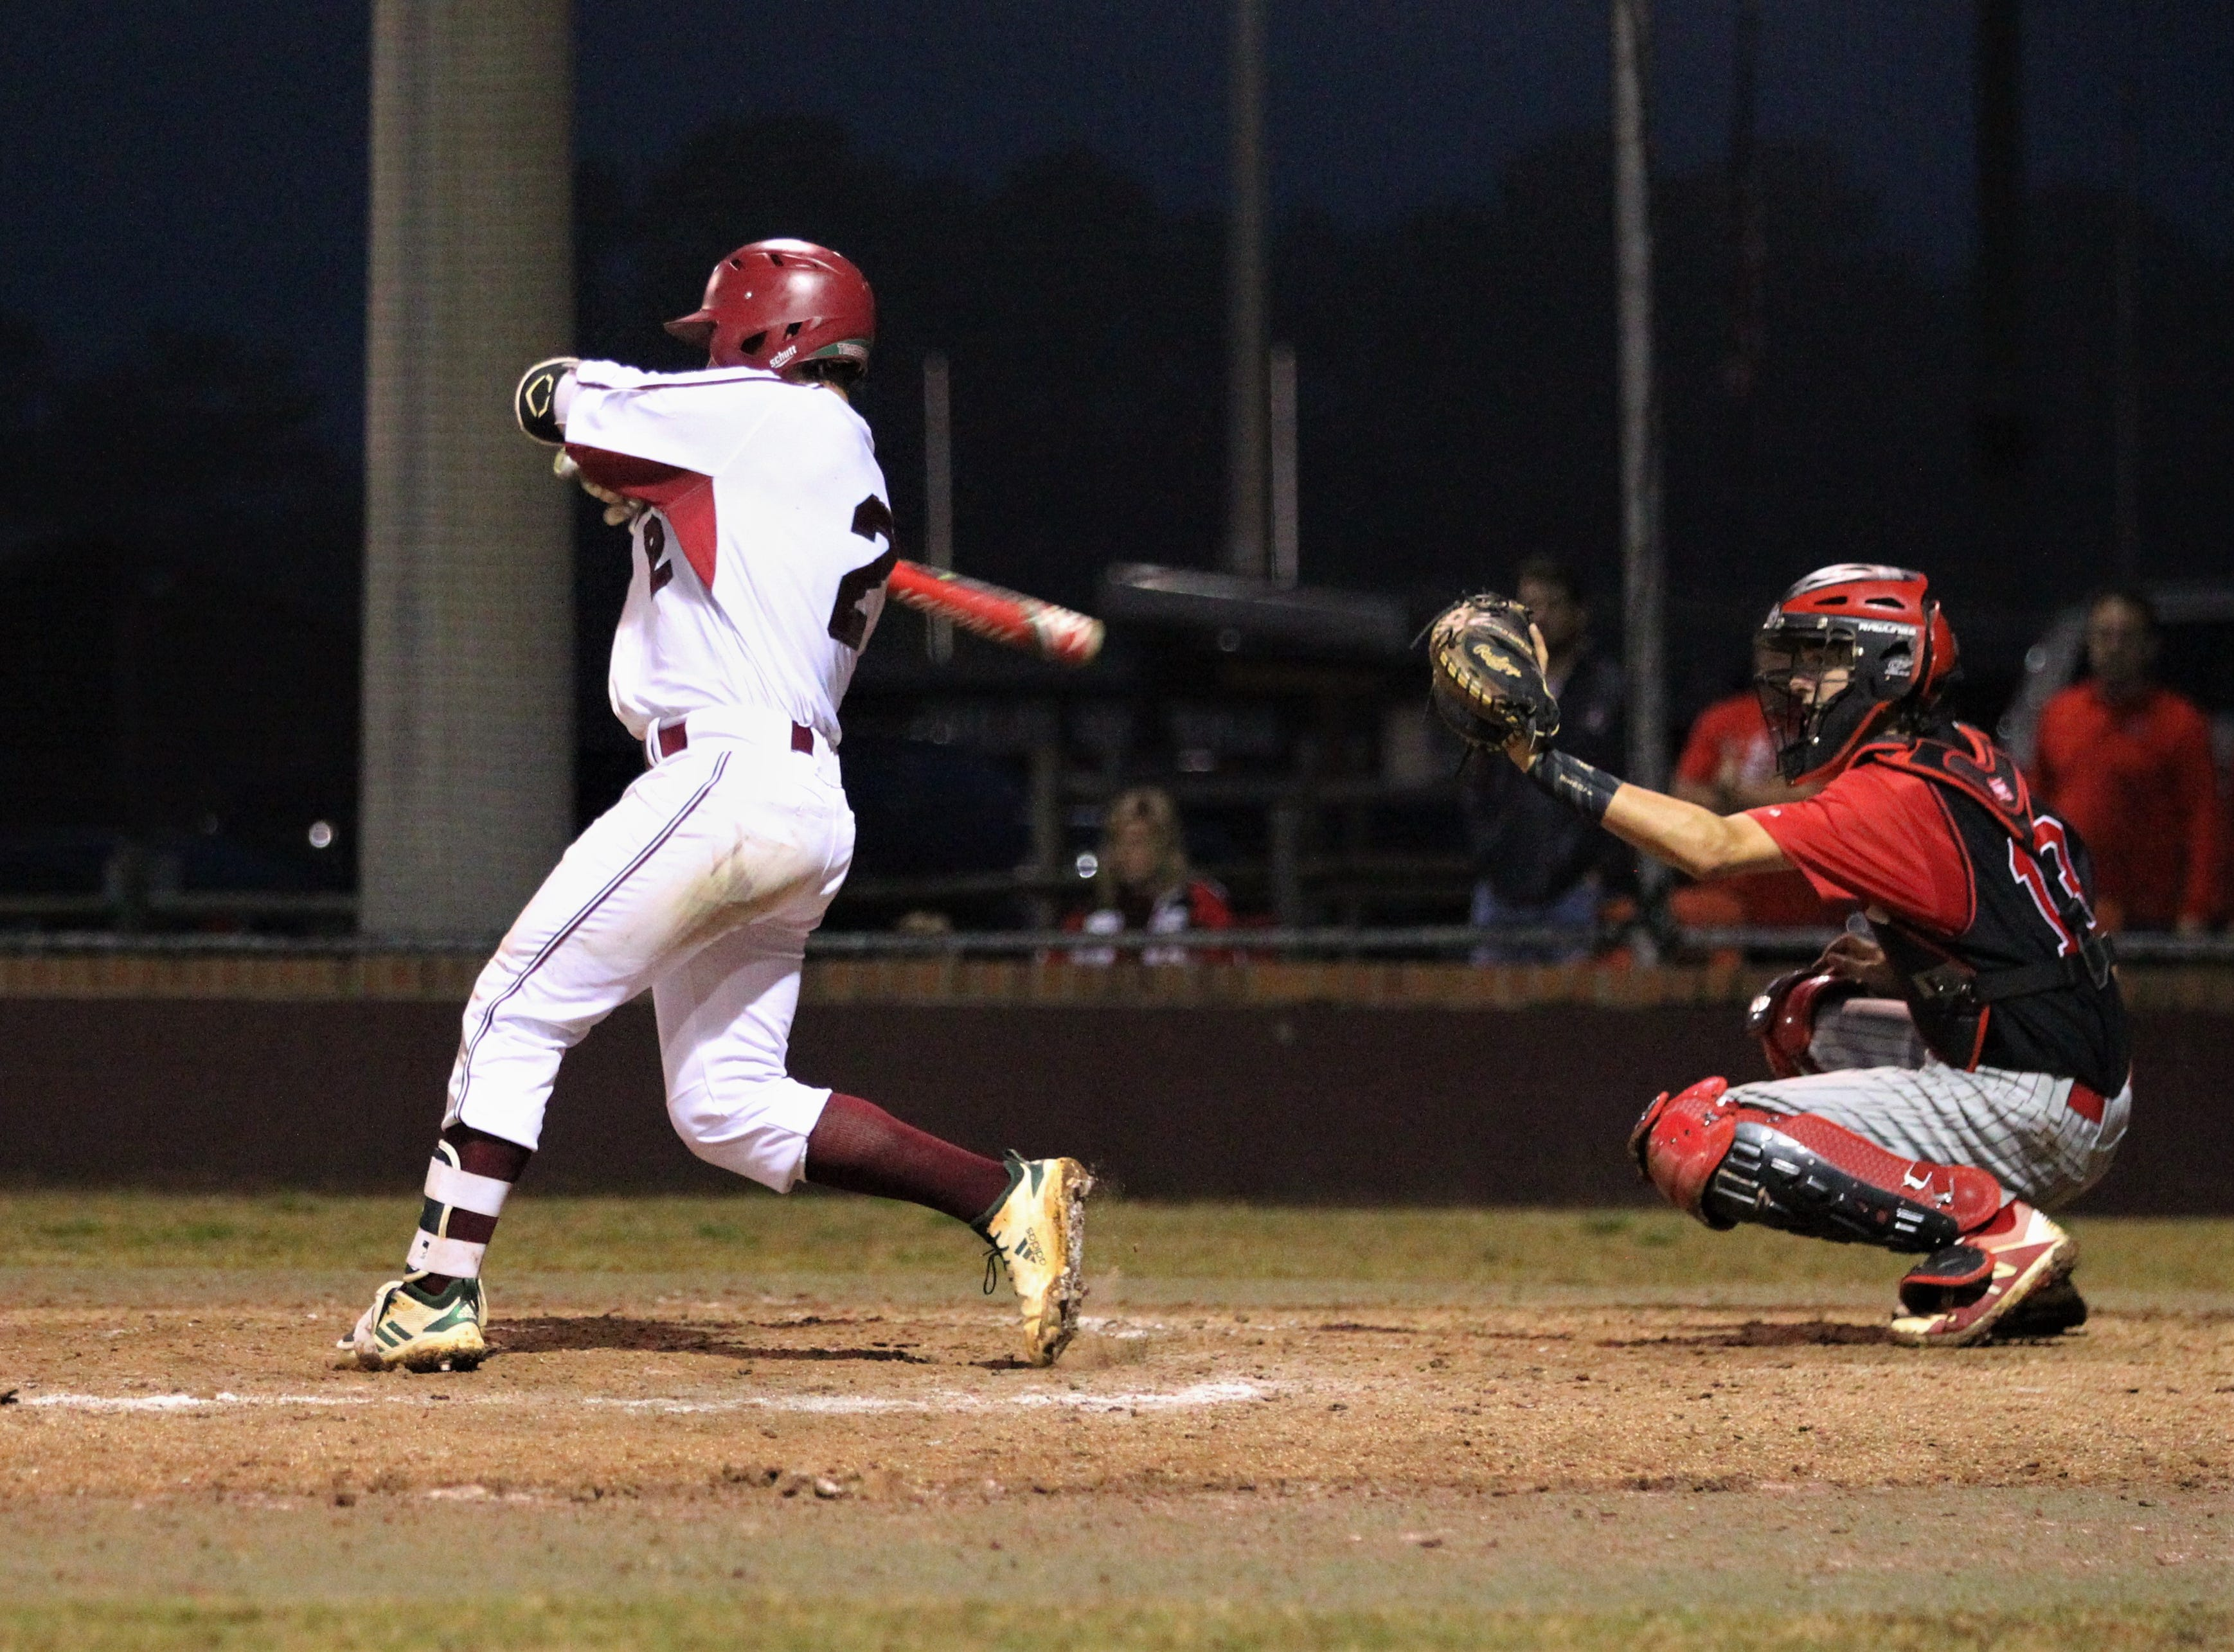 Chiles senior Cal McCallum bats as Chiles won an 11-6 home game against Leon on Friday, April 5, 2019, to force a season split. The Lions won 3-0 earlier in the week.